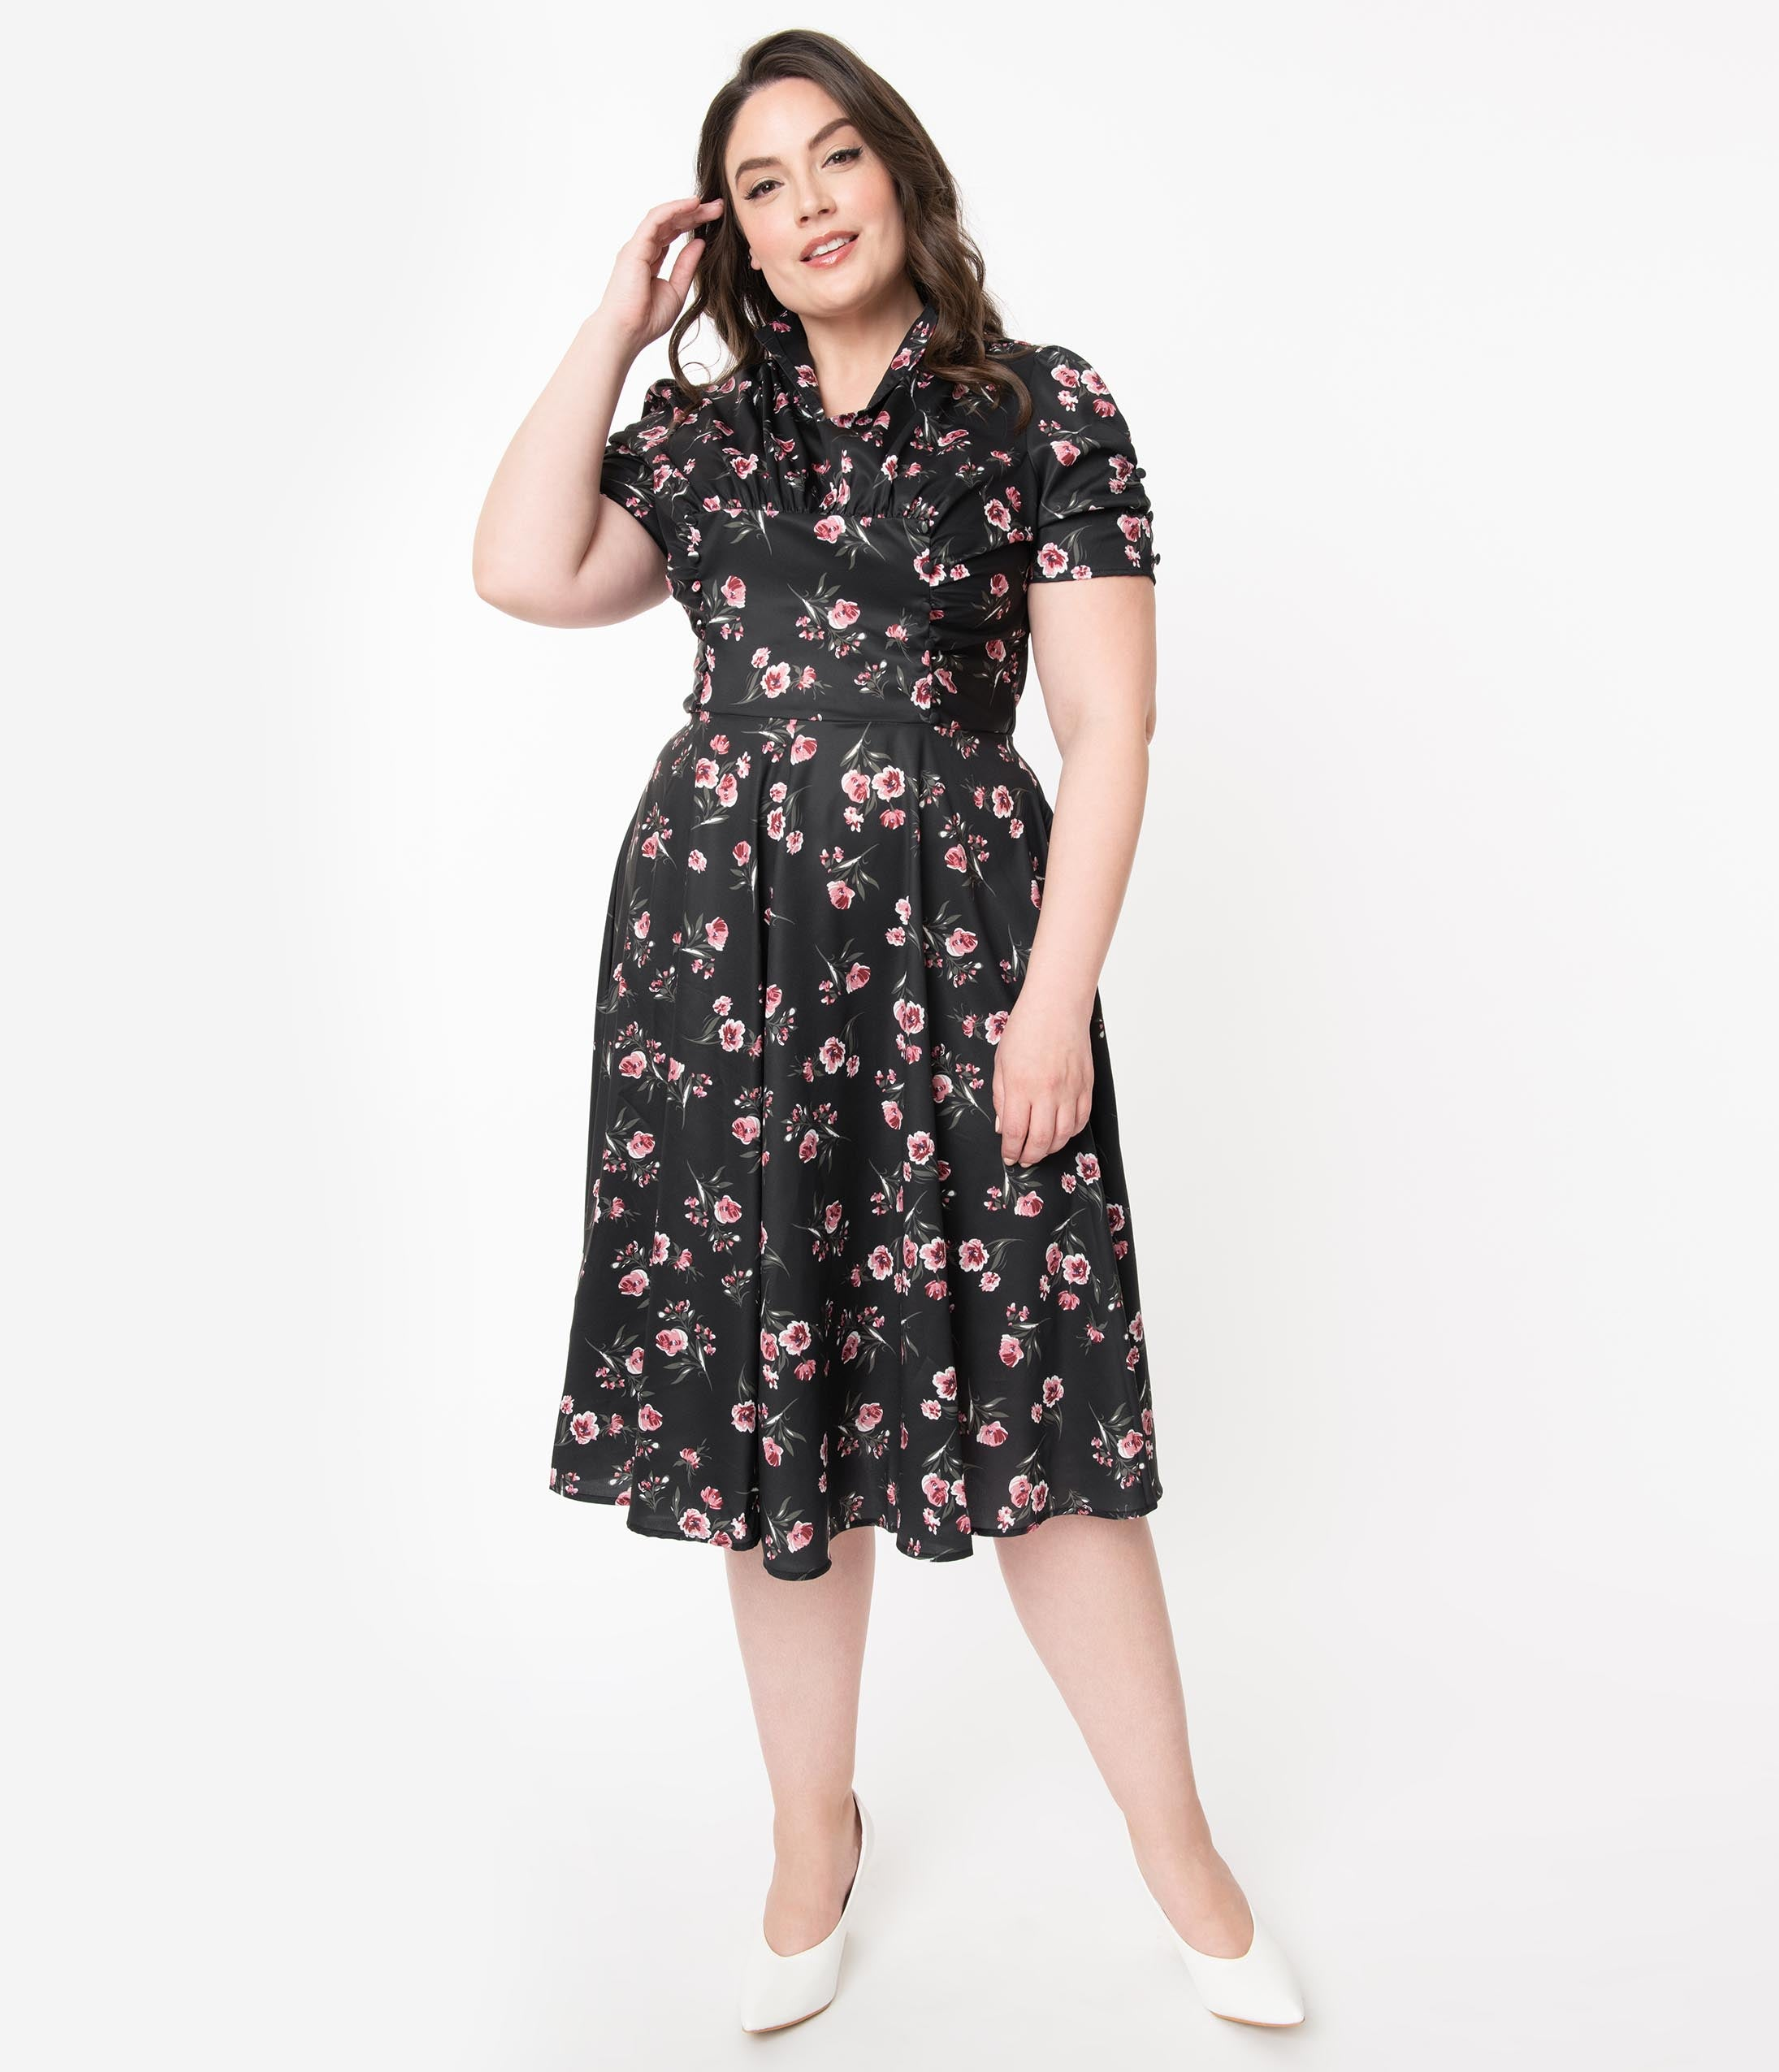 500 Vintage Style Dresses for Sale | Vintage Inspired Dresses Unique Vintage Plus Size 1940S Black  Pink Floral Print Camilla Midi Dress $78.00 AT vintagedancer.com